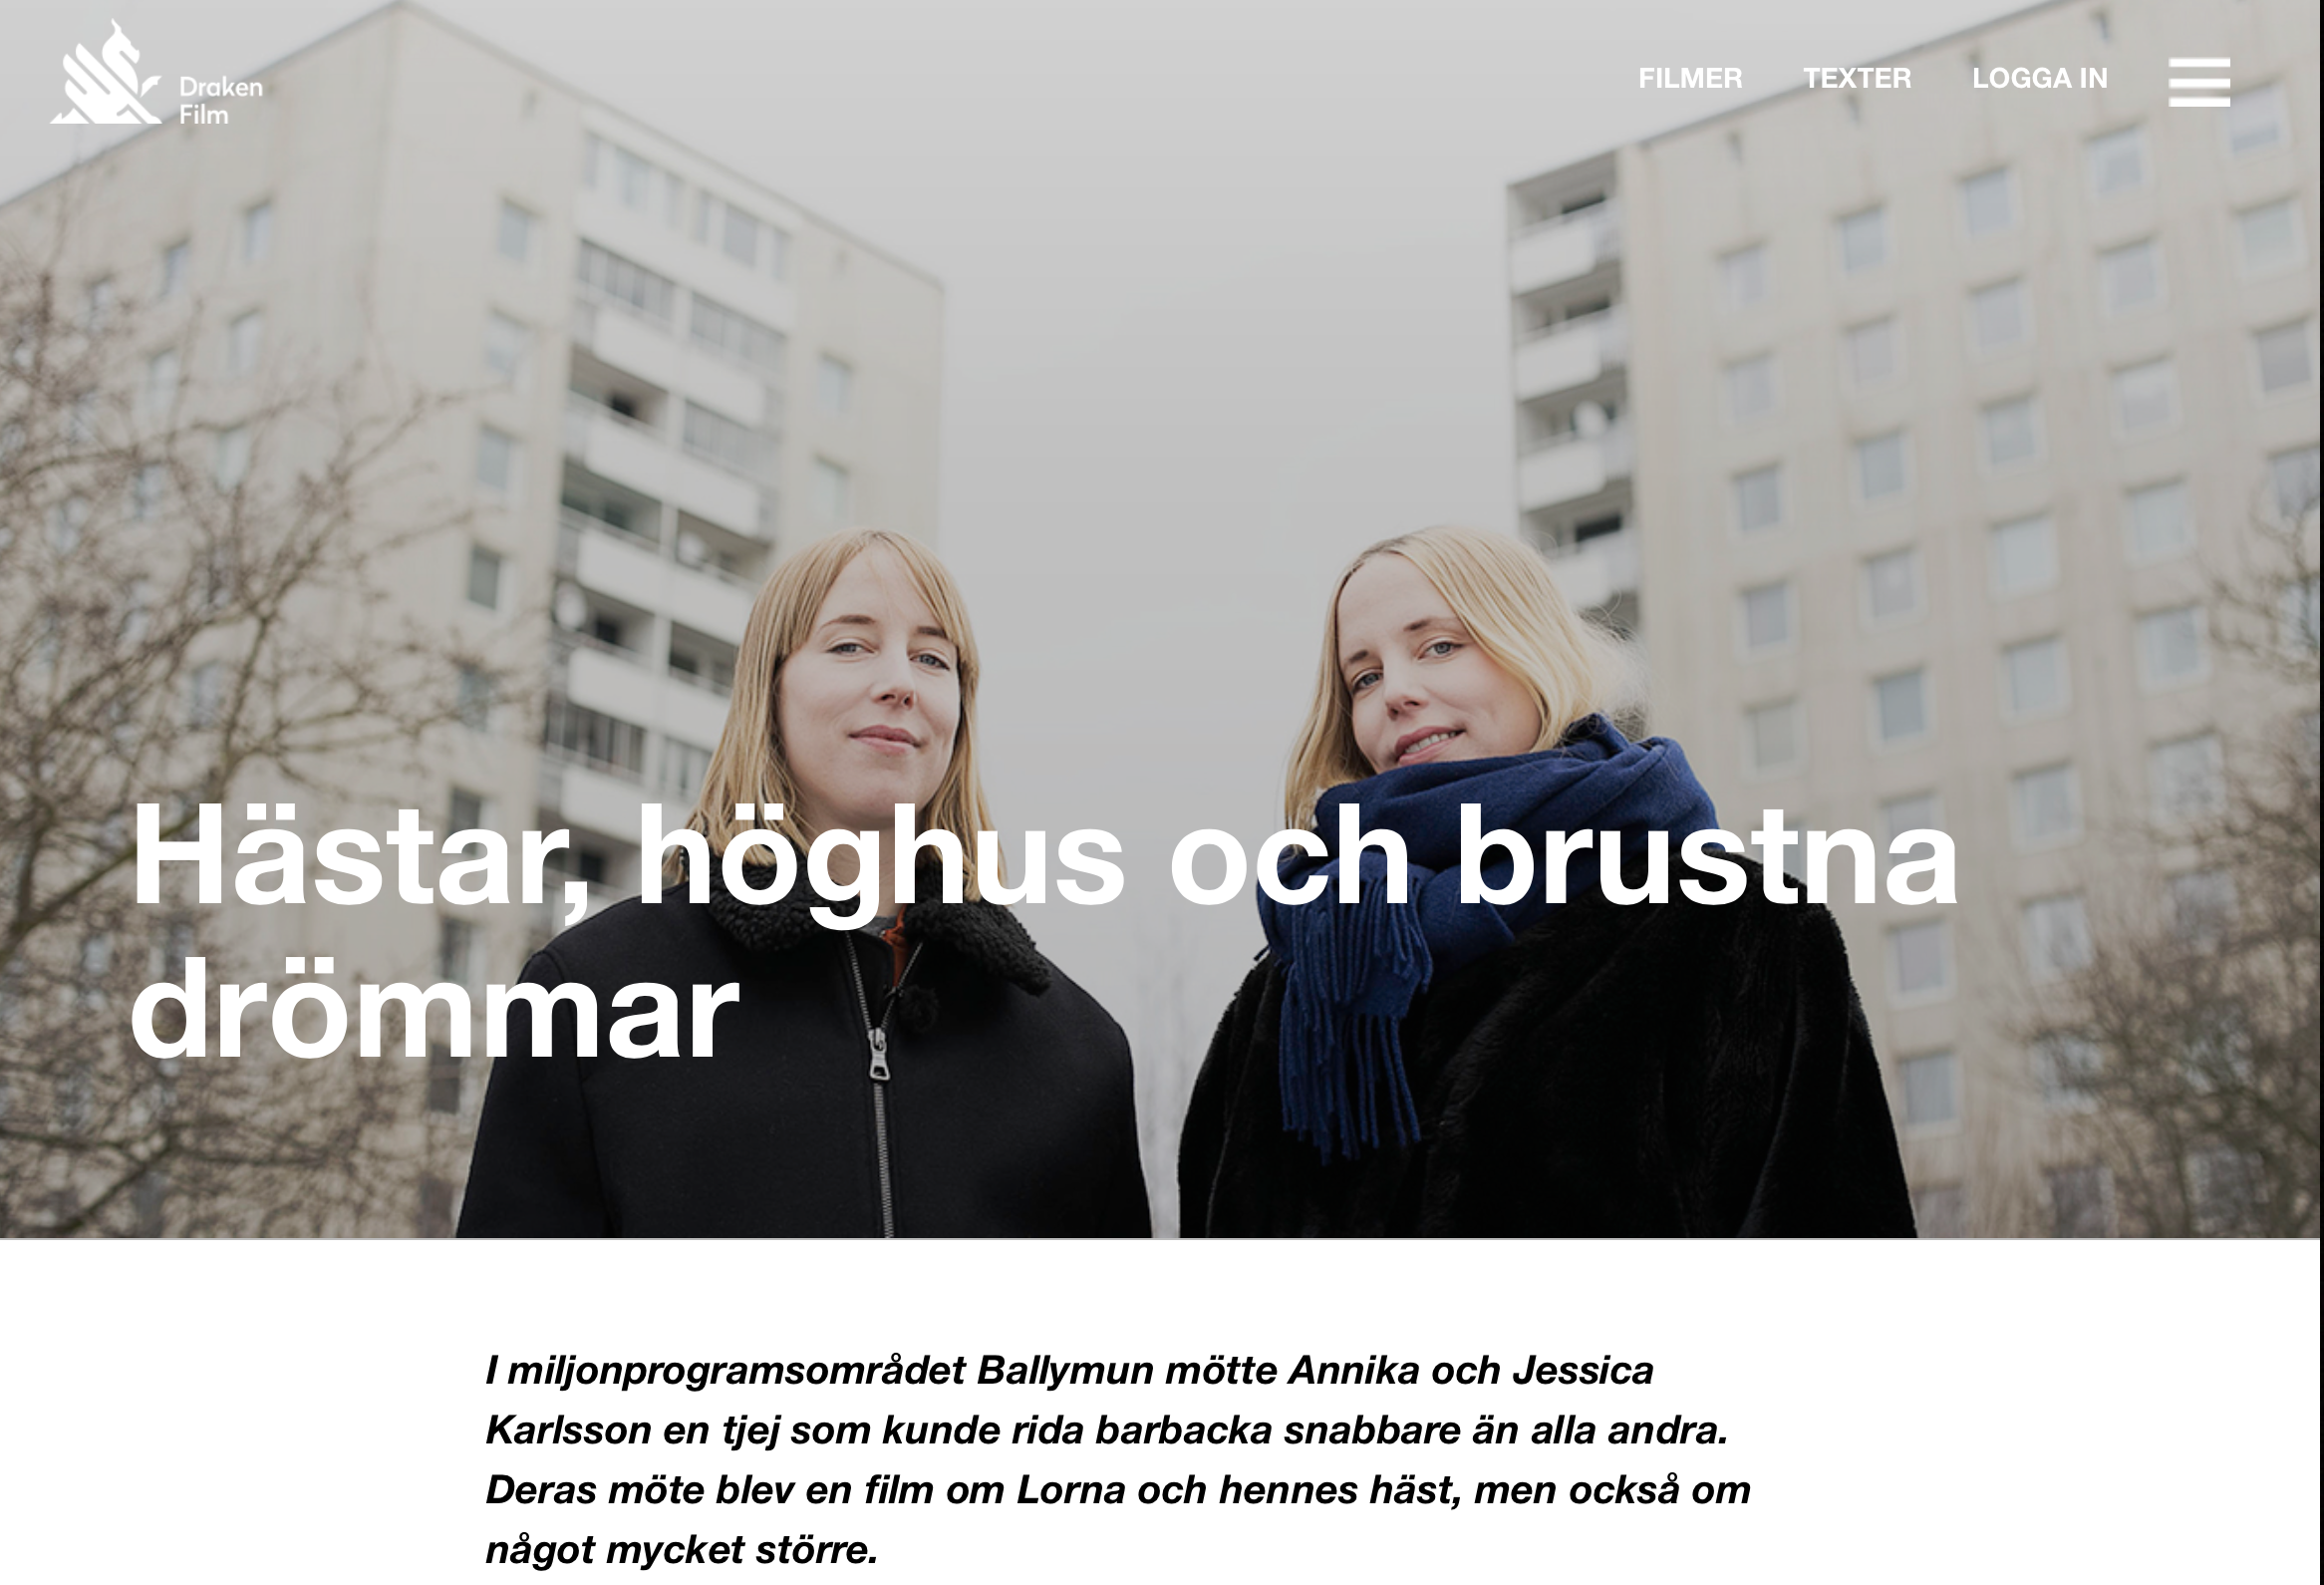 Interview with Draken Film! - Read this interview Draken Film did with us, while launching our film. Read it here, the interview became very nice.